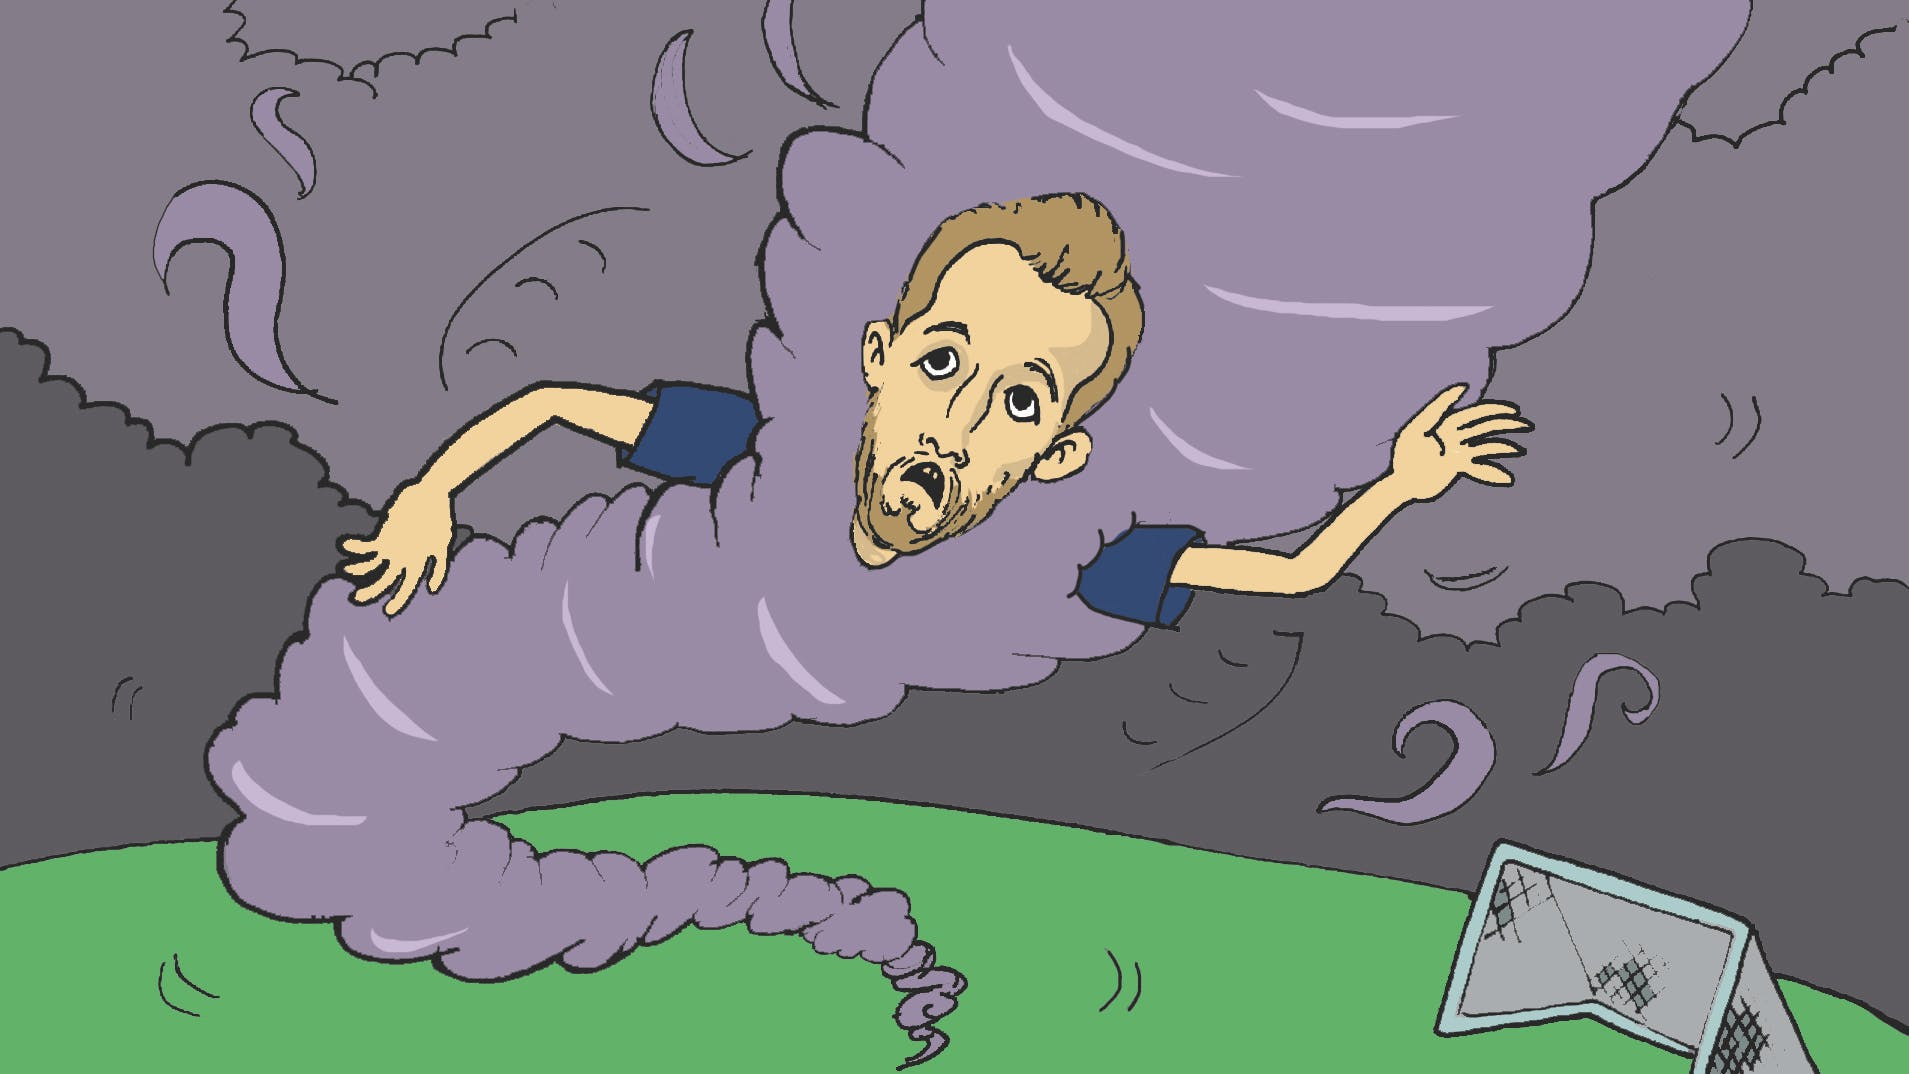 What blows at 100mph and always scores? - Harry Kane the Hurricane!